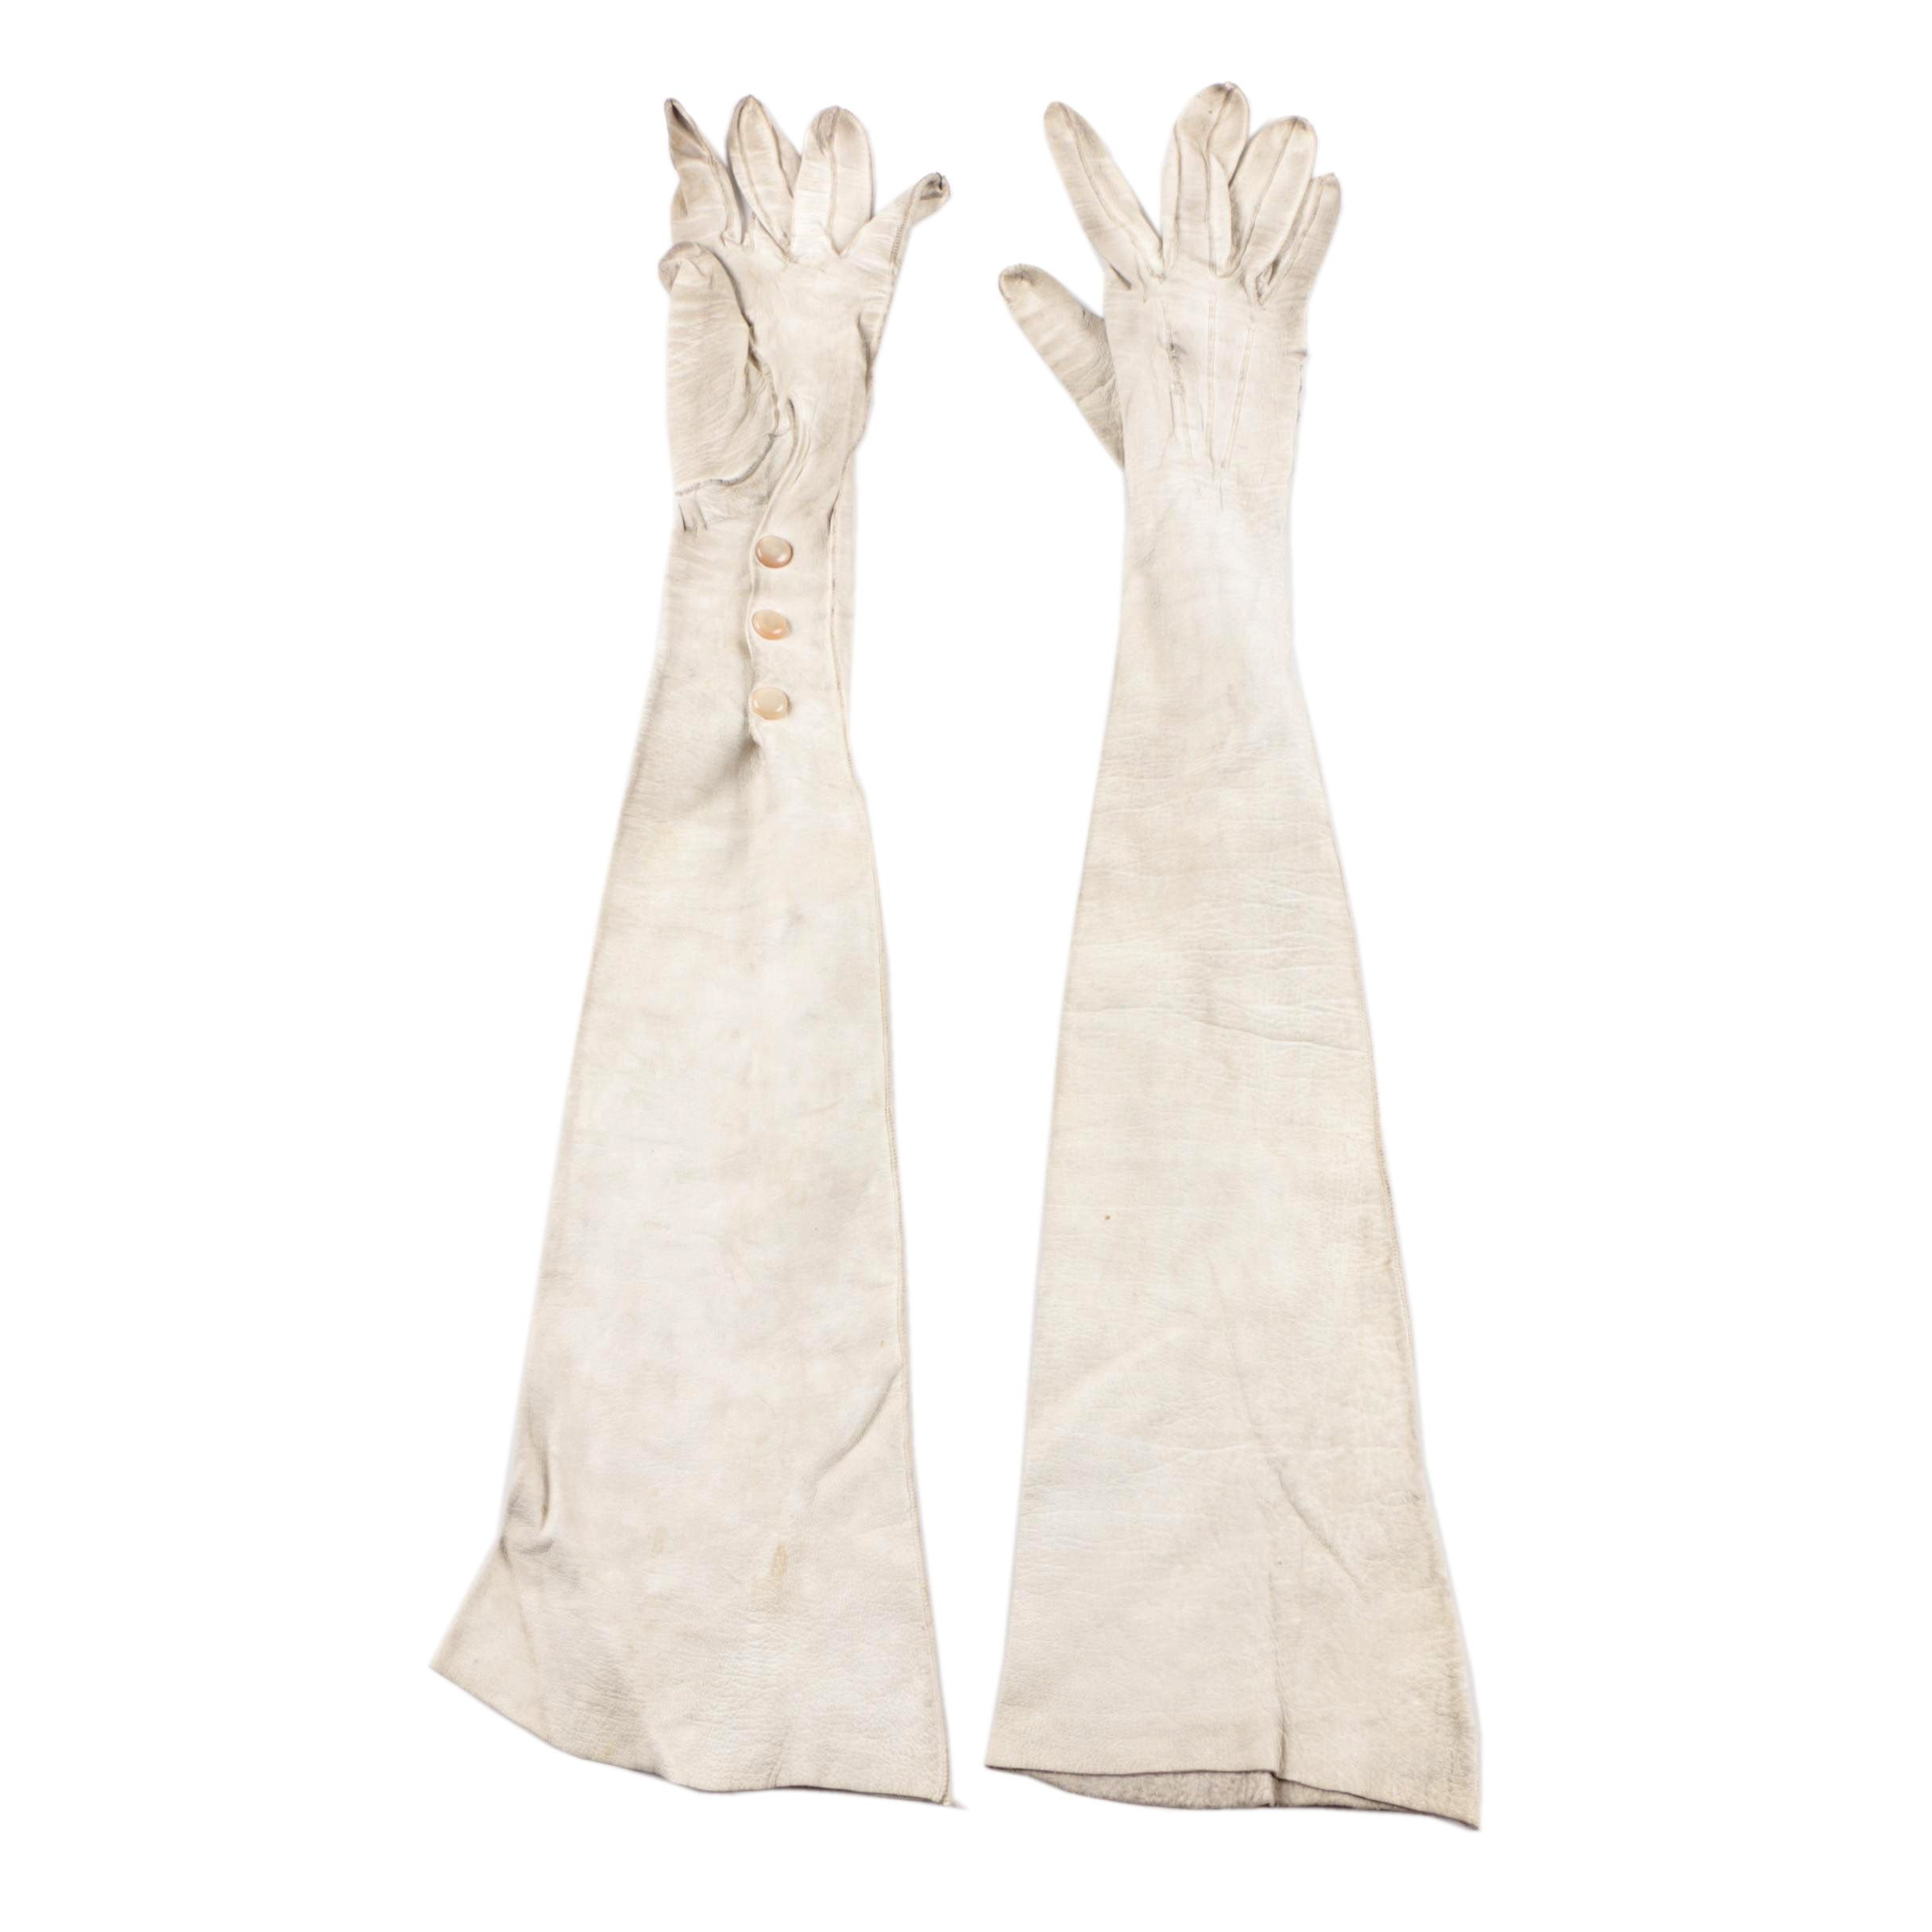 Vintage Off-White Leather Opera Gloves with Opalescent Buttons